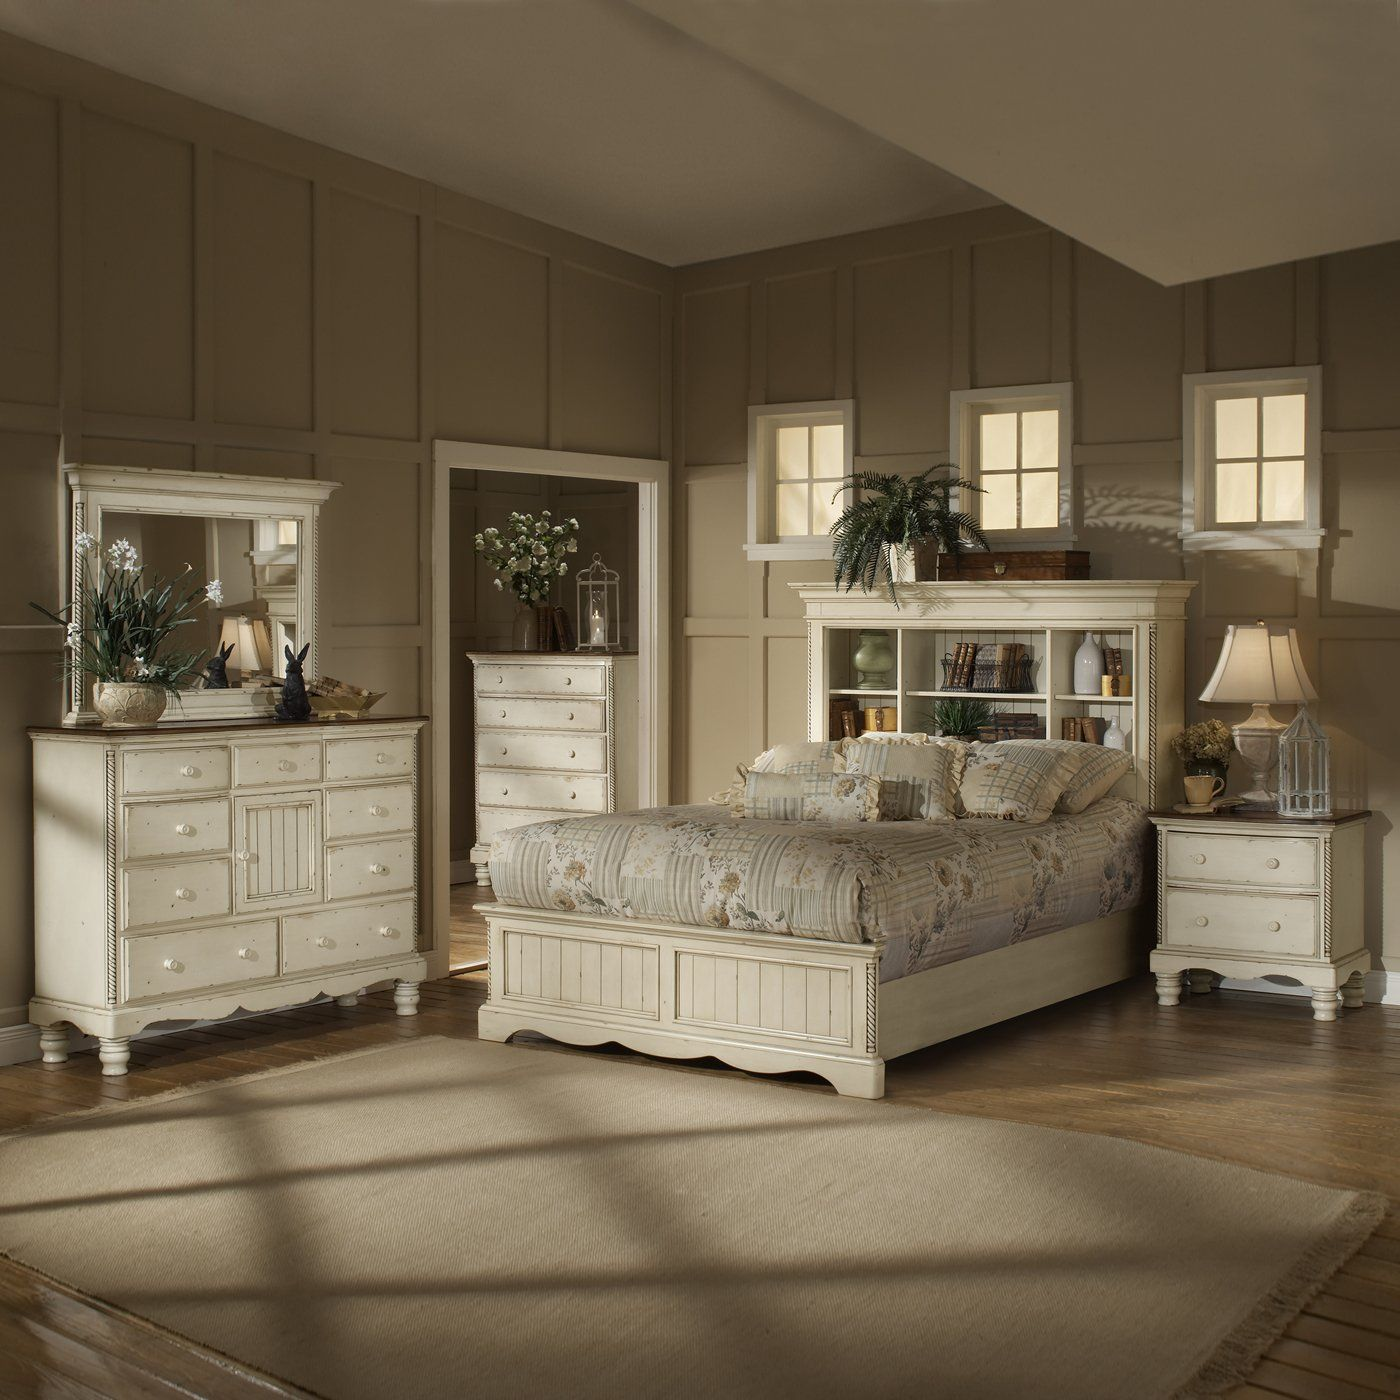 Bookcase Bedroom Furniture Hillsdale Furniture 1172 Wilshire Bookcase Headboard Bedroom Set